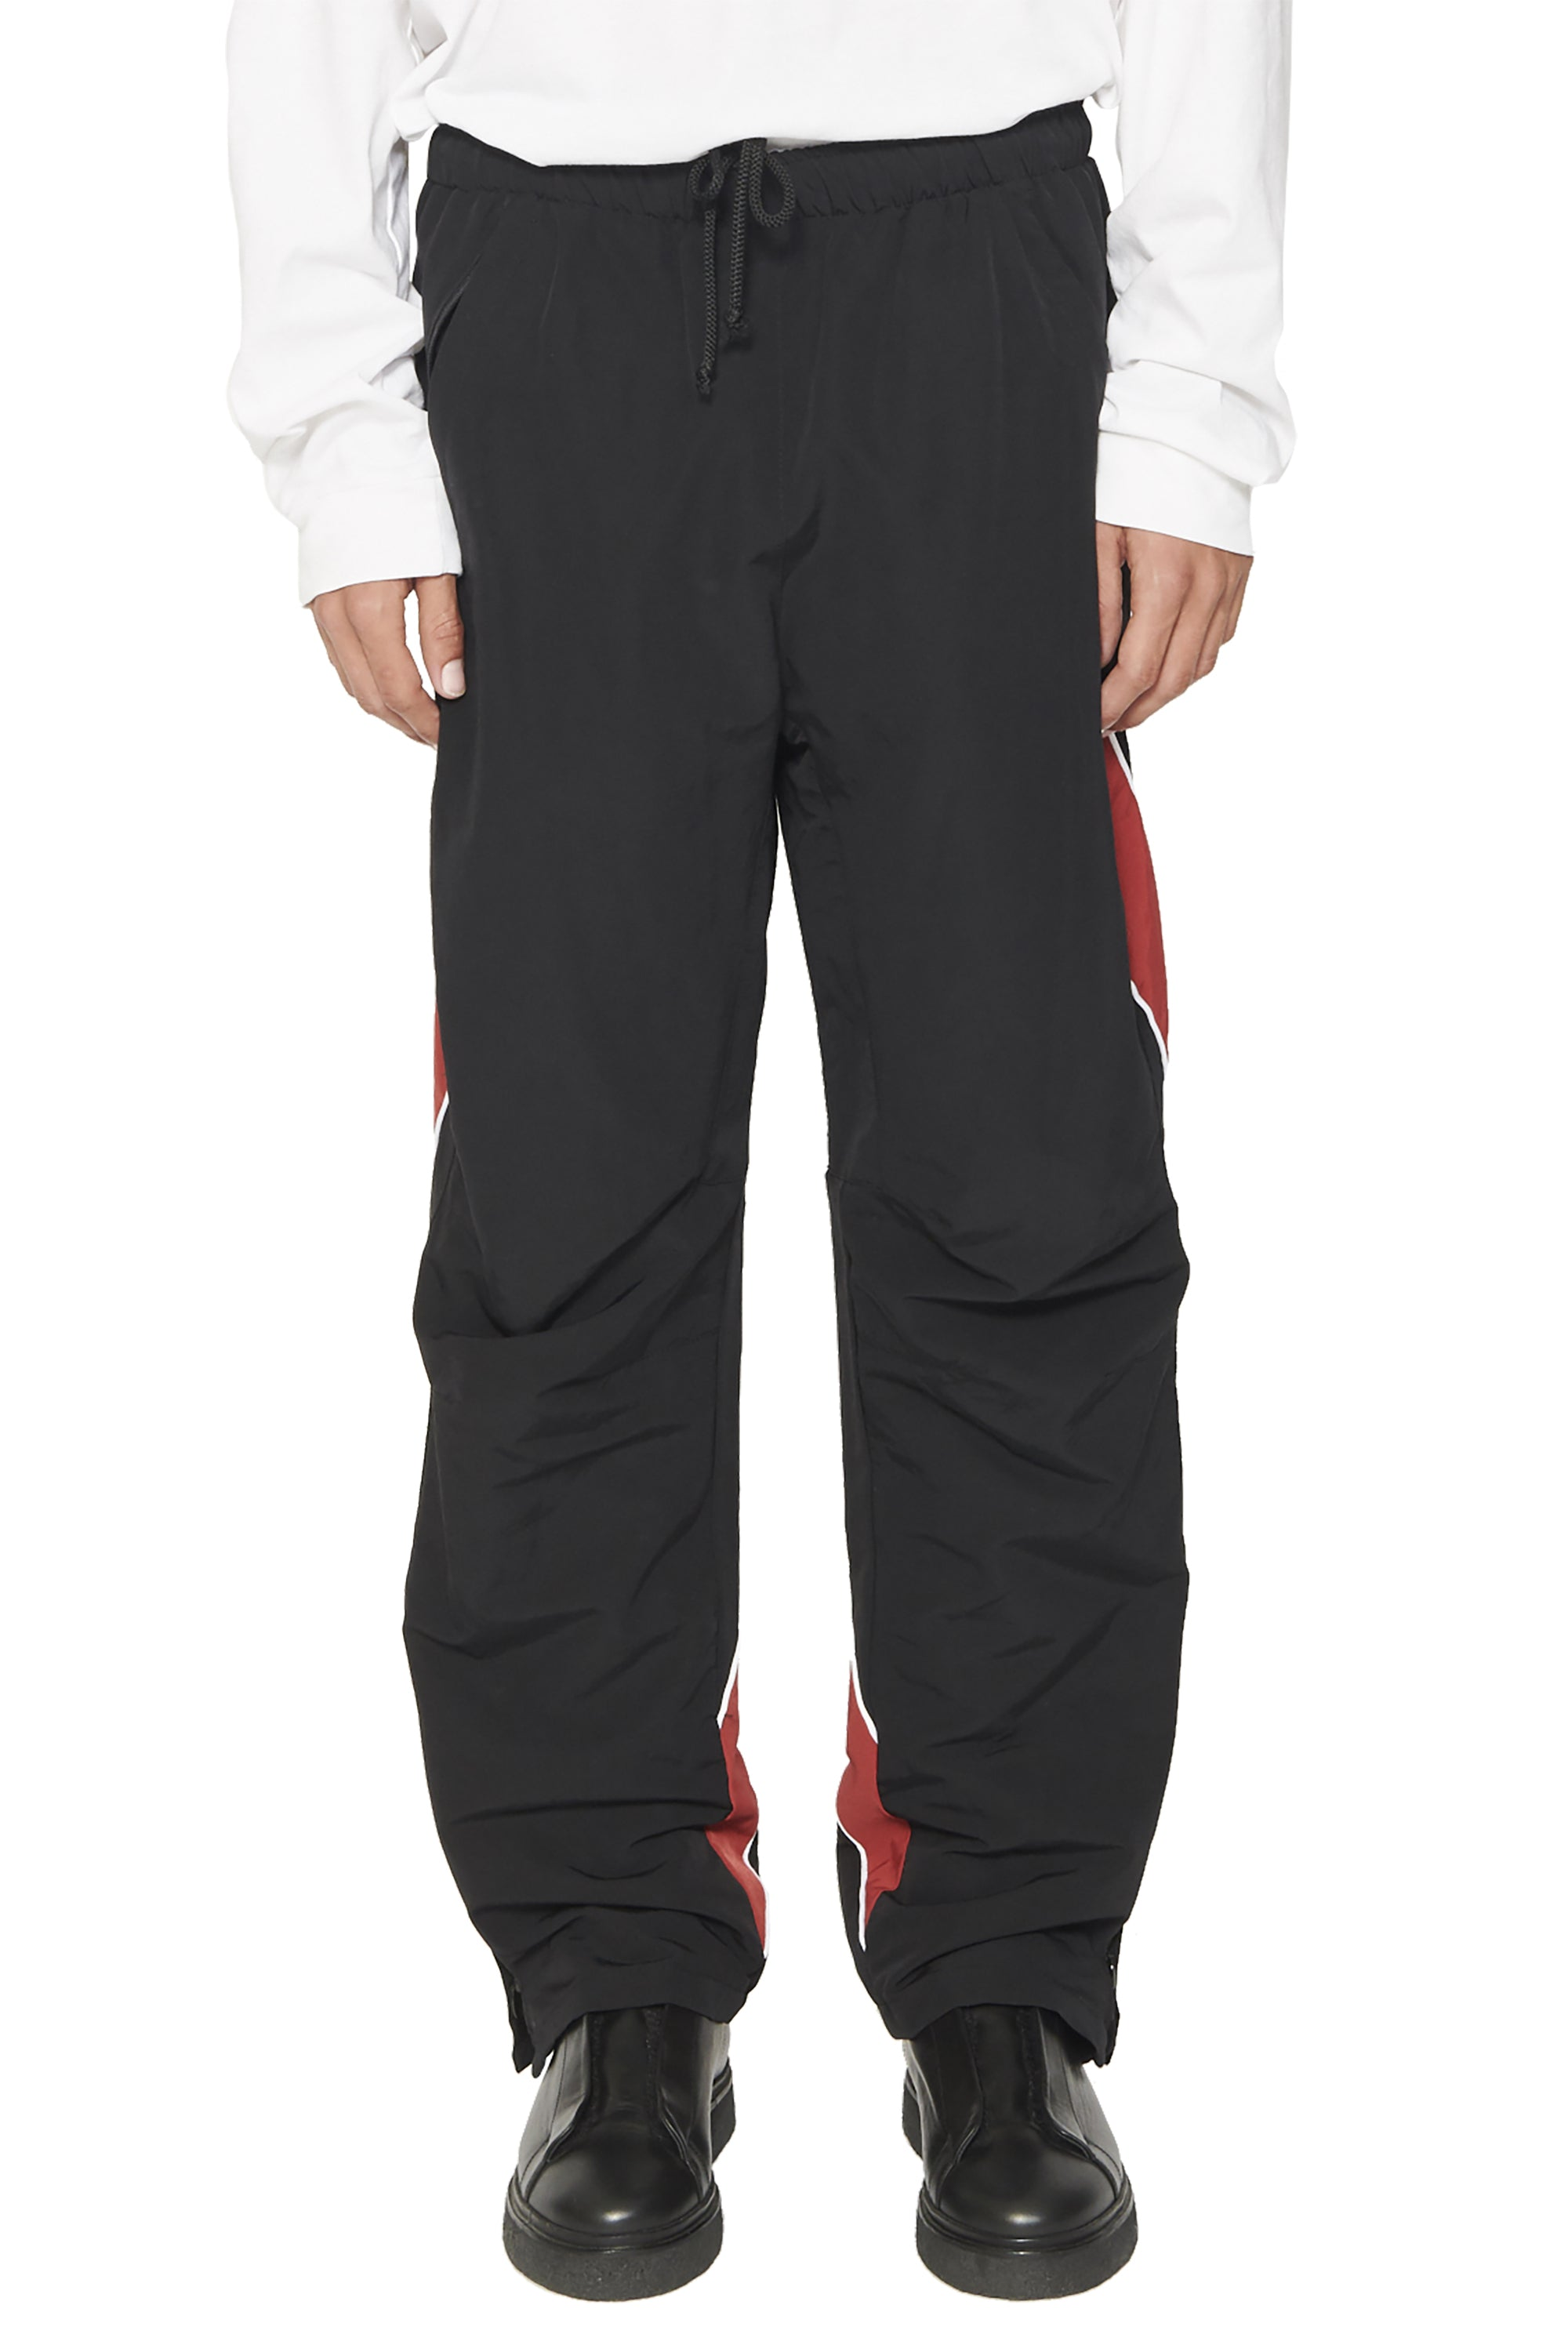 STADIUM PANT - BLACK/RED